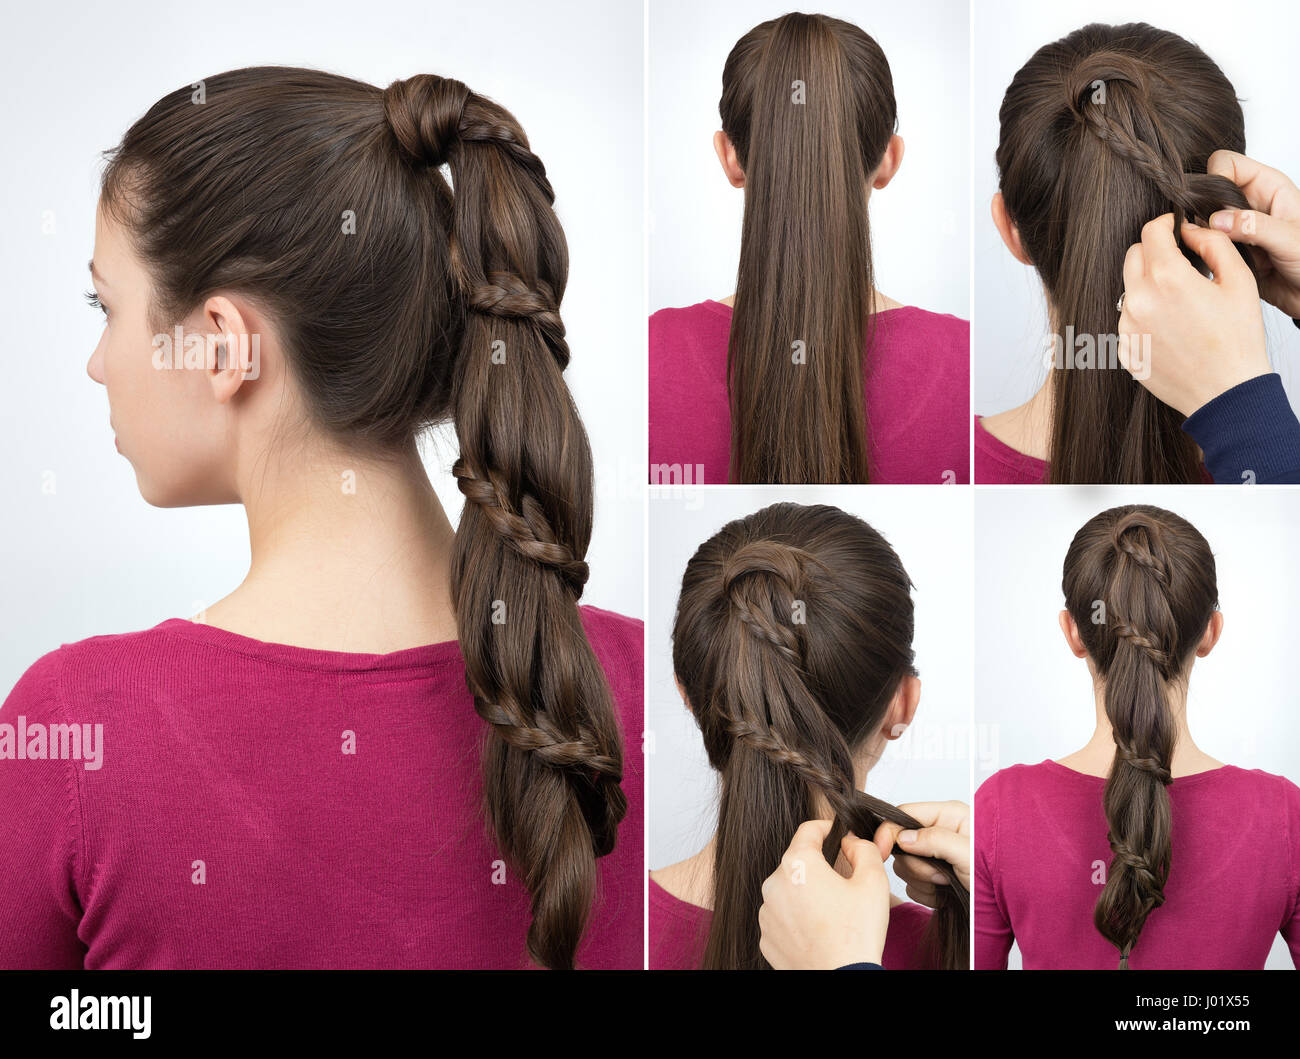 braided hairstyle for party tutorial step by step. Black Bedroom Furniture Sets. Home Design Ideas